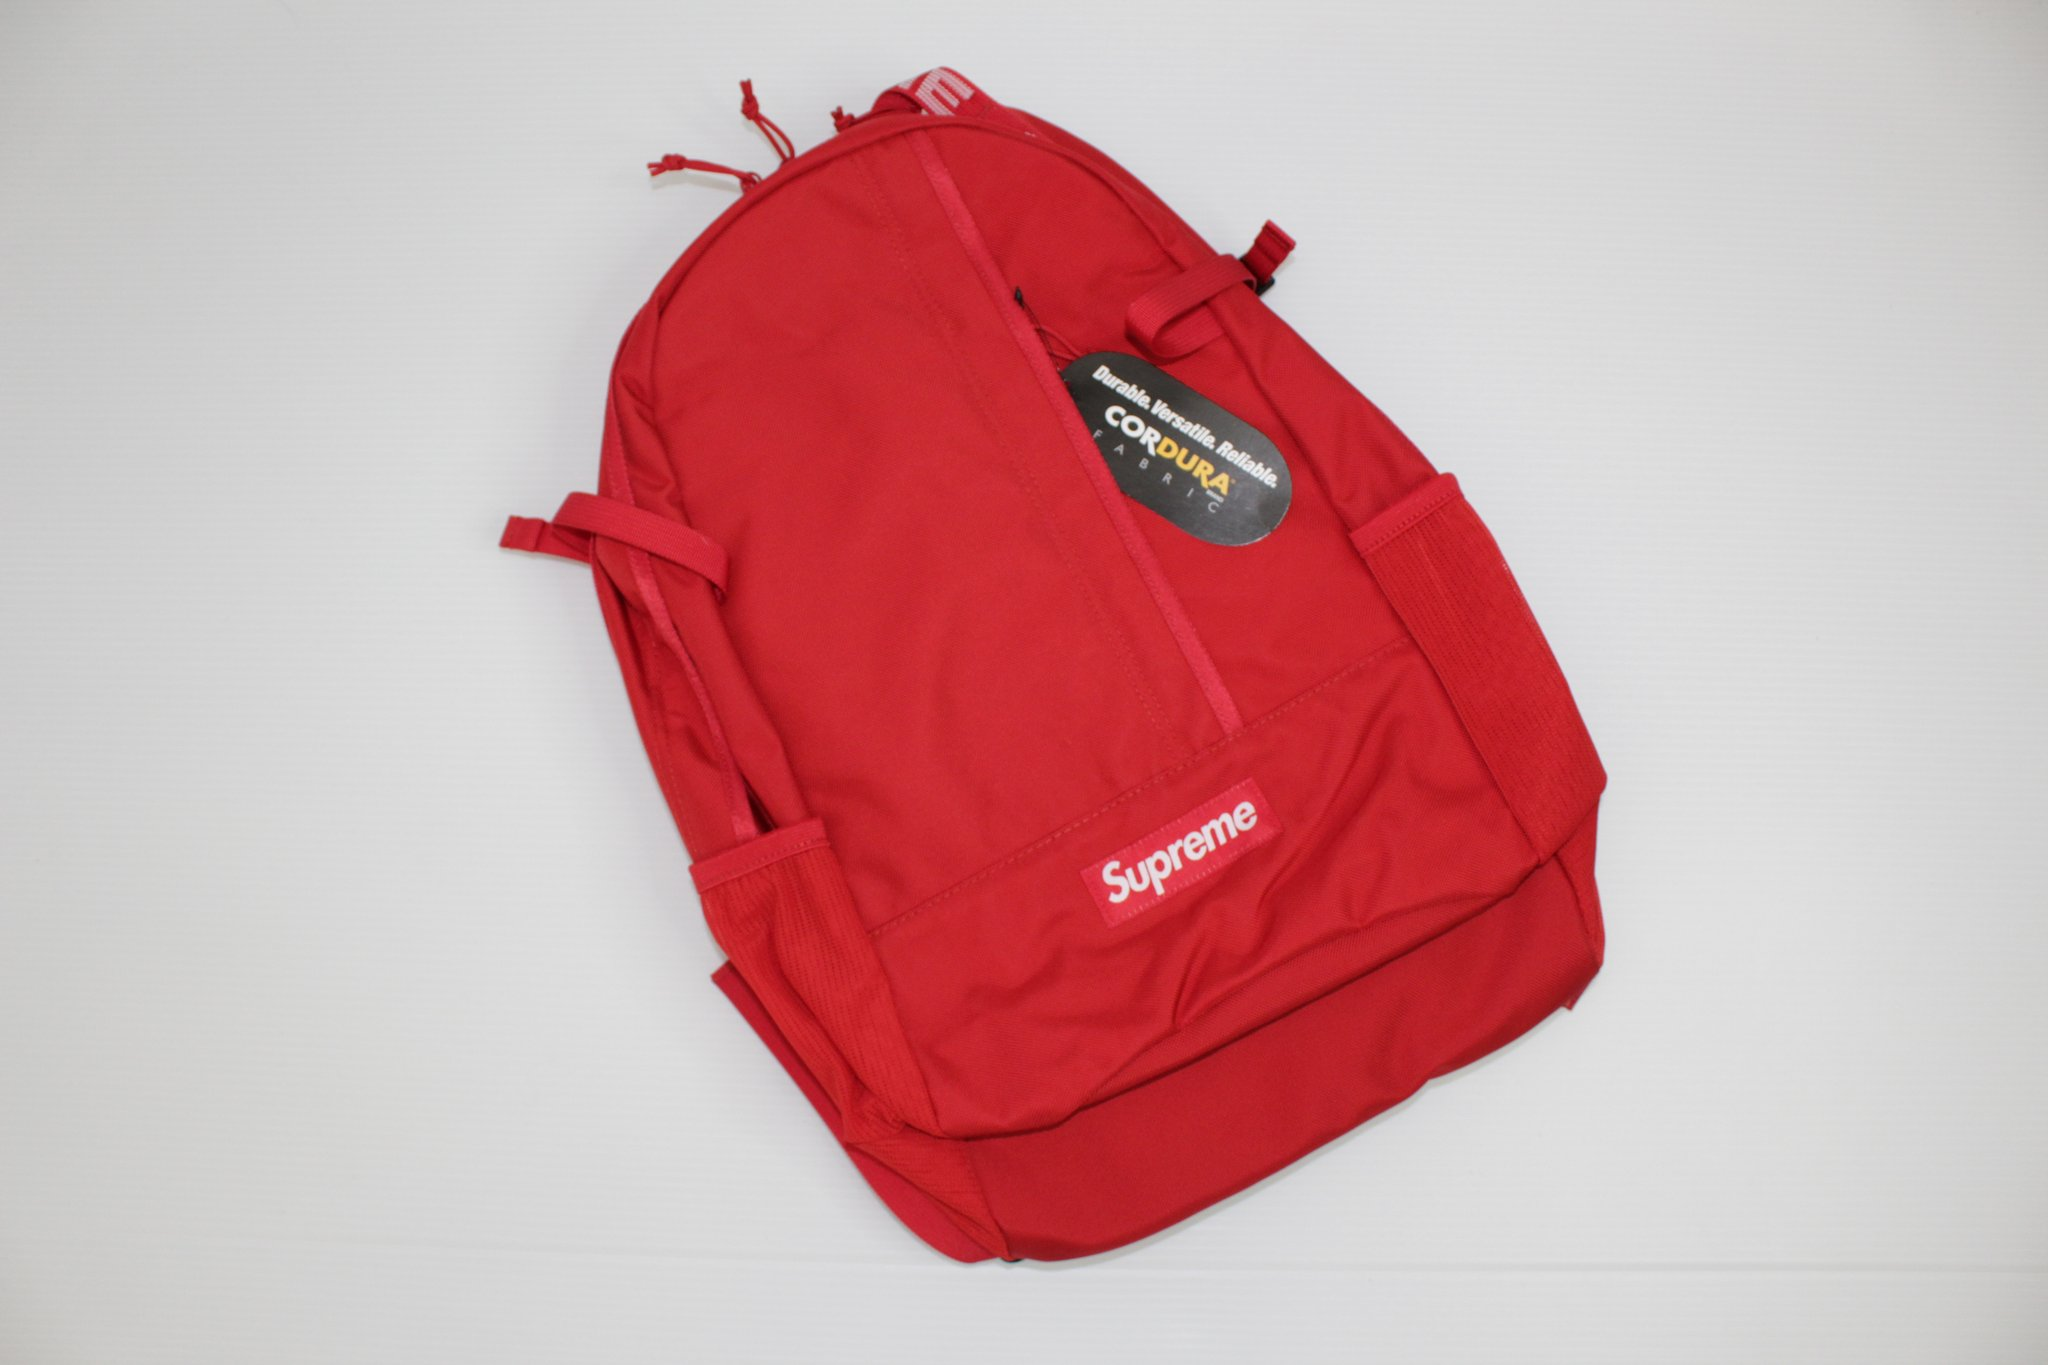 c1d845d39b1 Supreme Supreme Backpack Ss18 - Red | Grailed